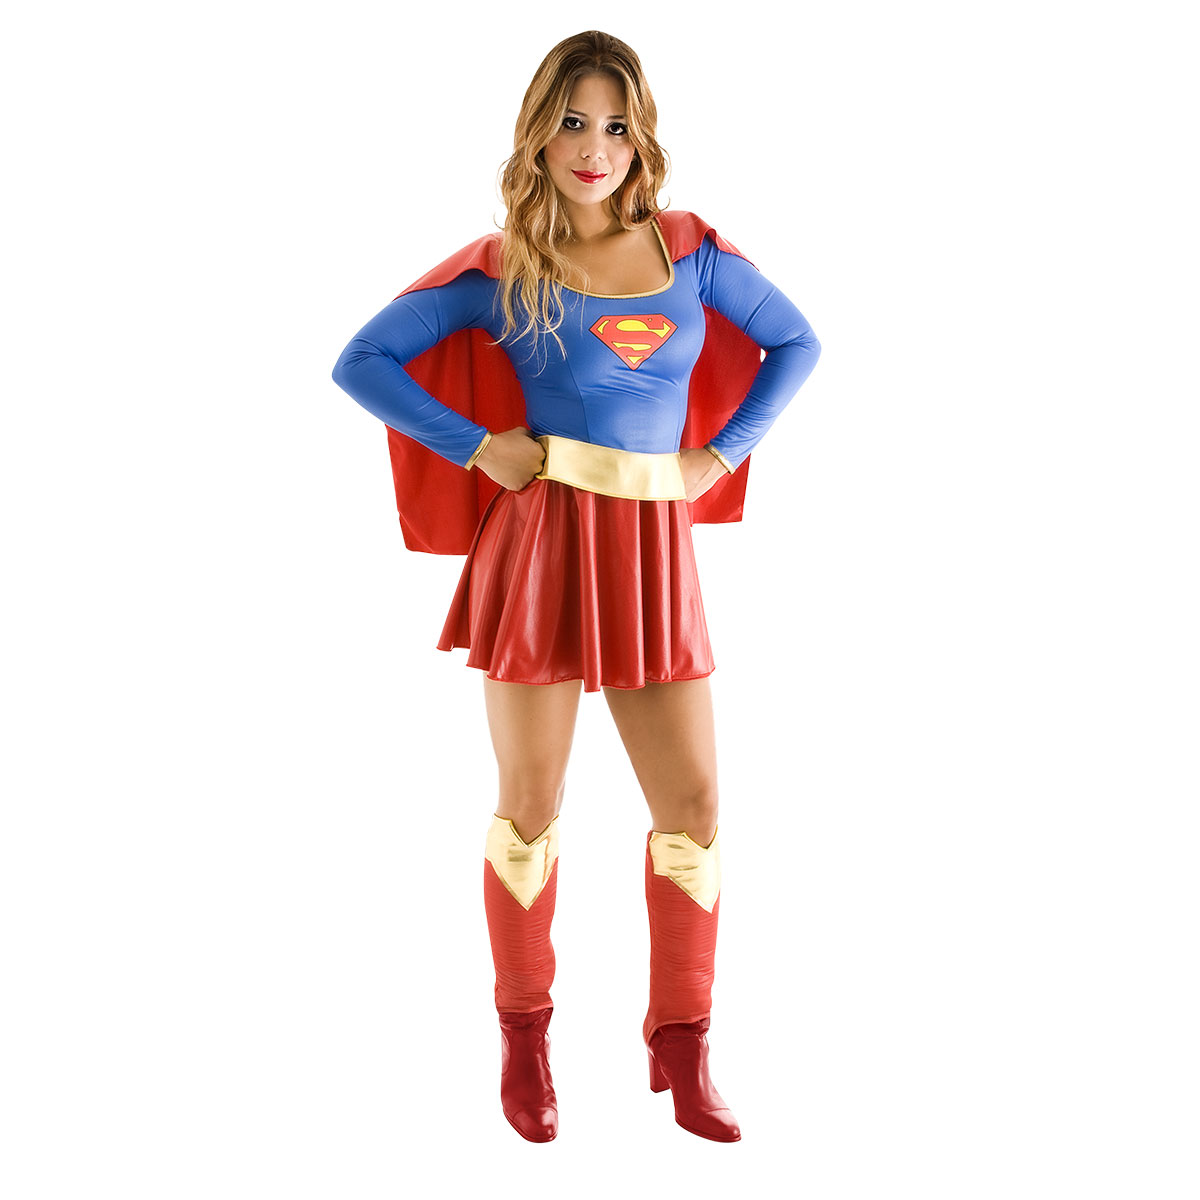 CLASSIC SUPERGIRL COSTUME FOR WOMEN